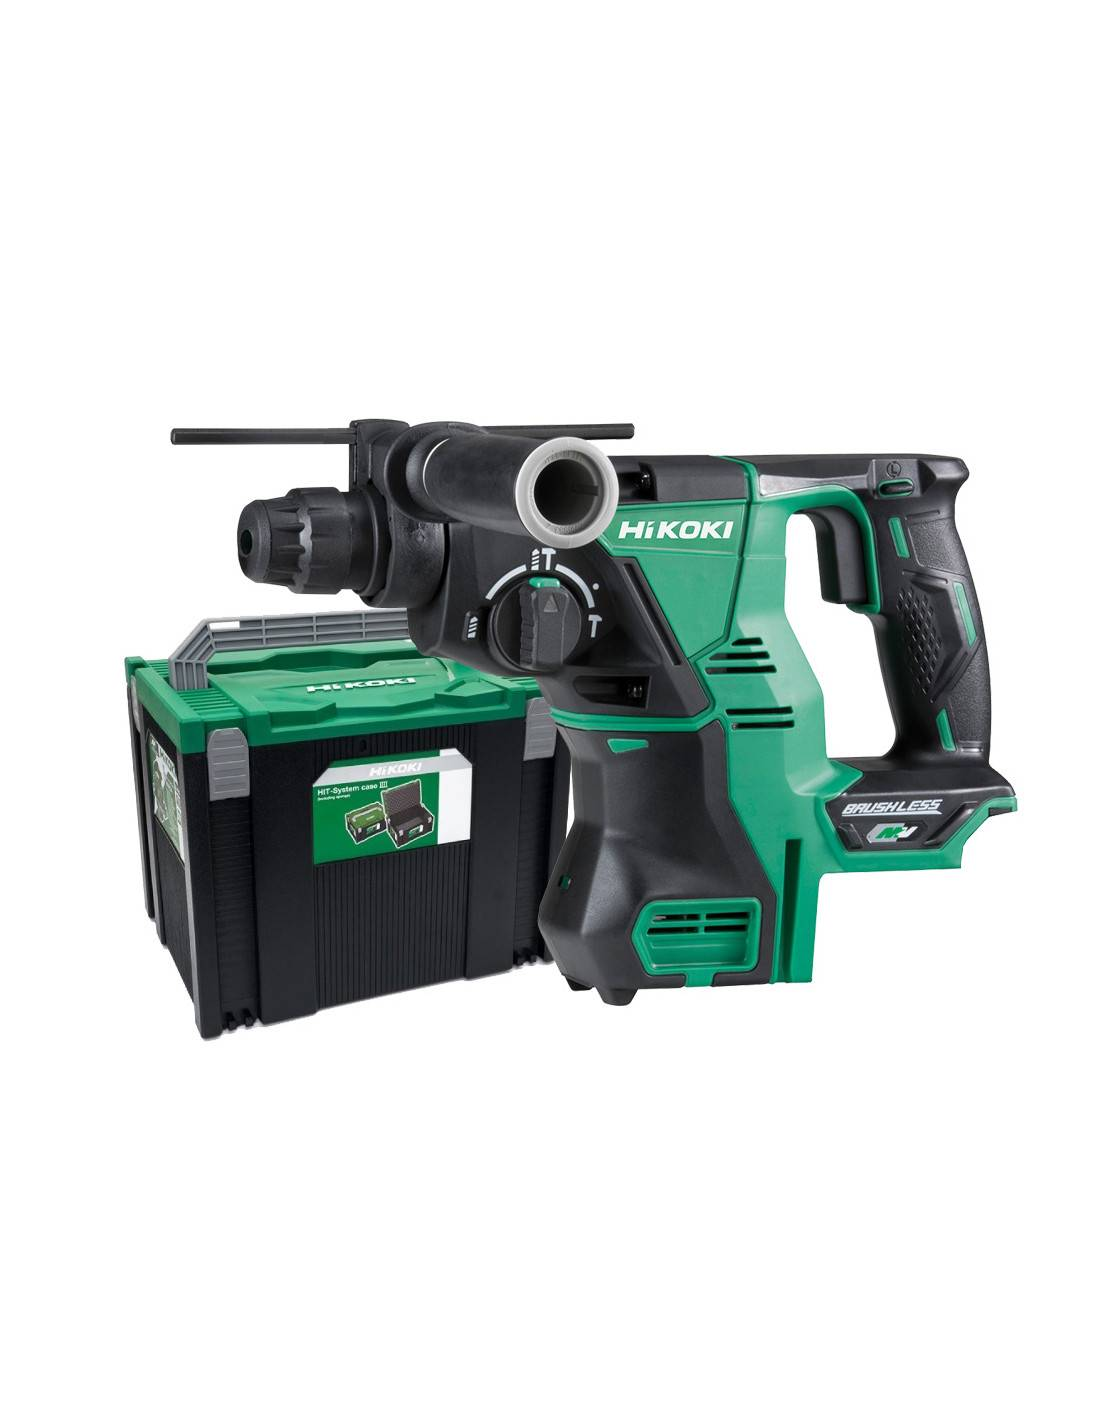 Perforateur SDS+ et SDS-MAX Multi Volt (machine seule) en coffret HITCASE - HIKOKI - DH36DPAW2Z